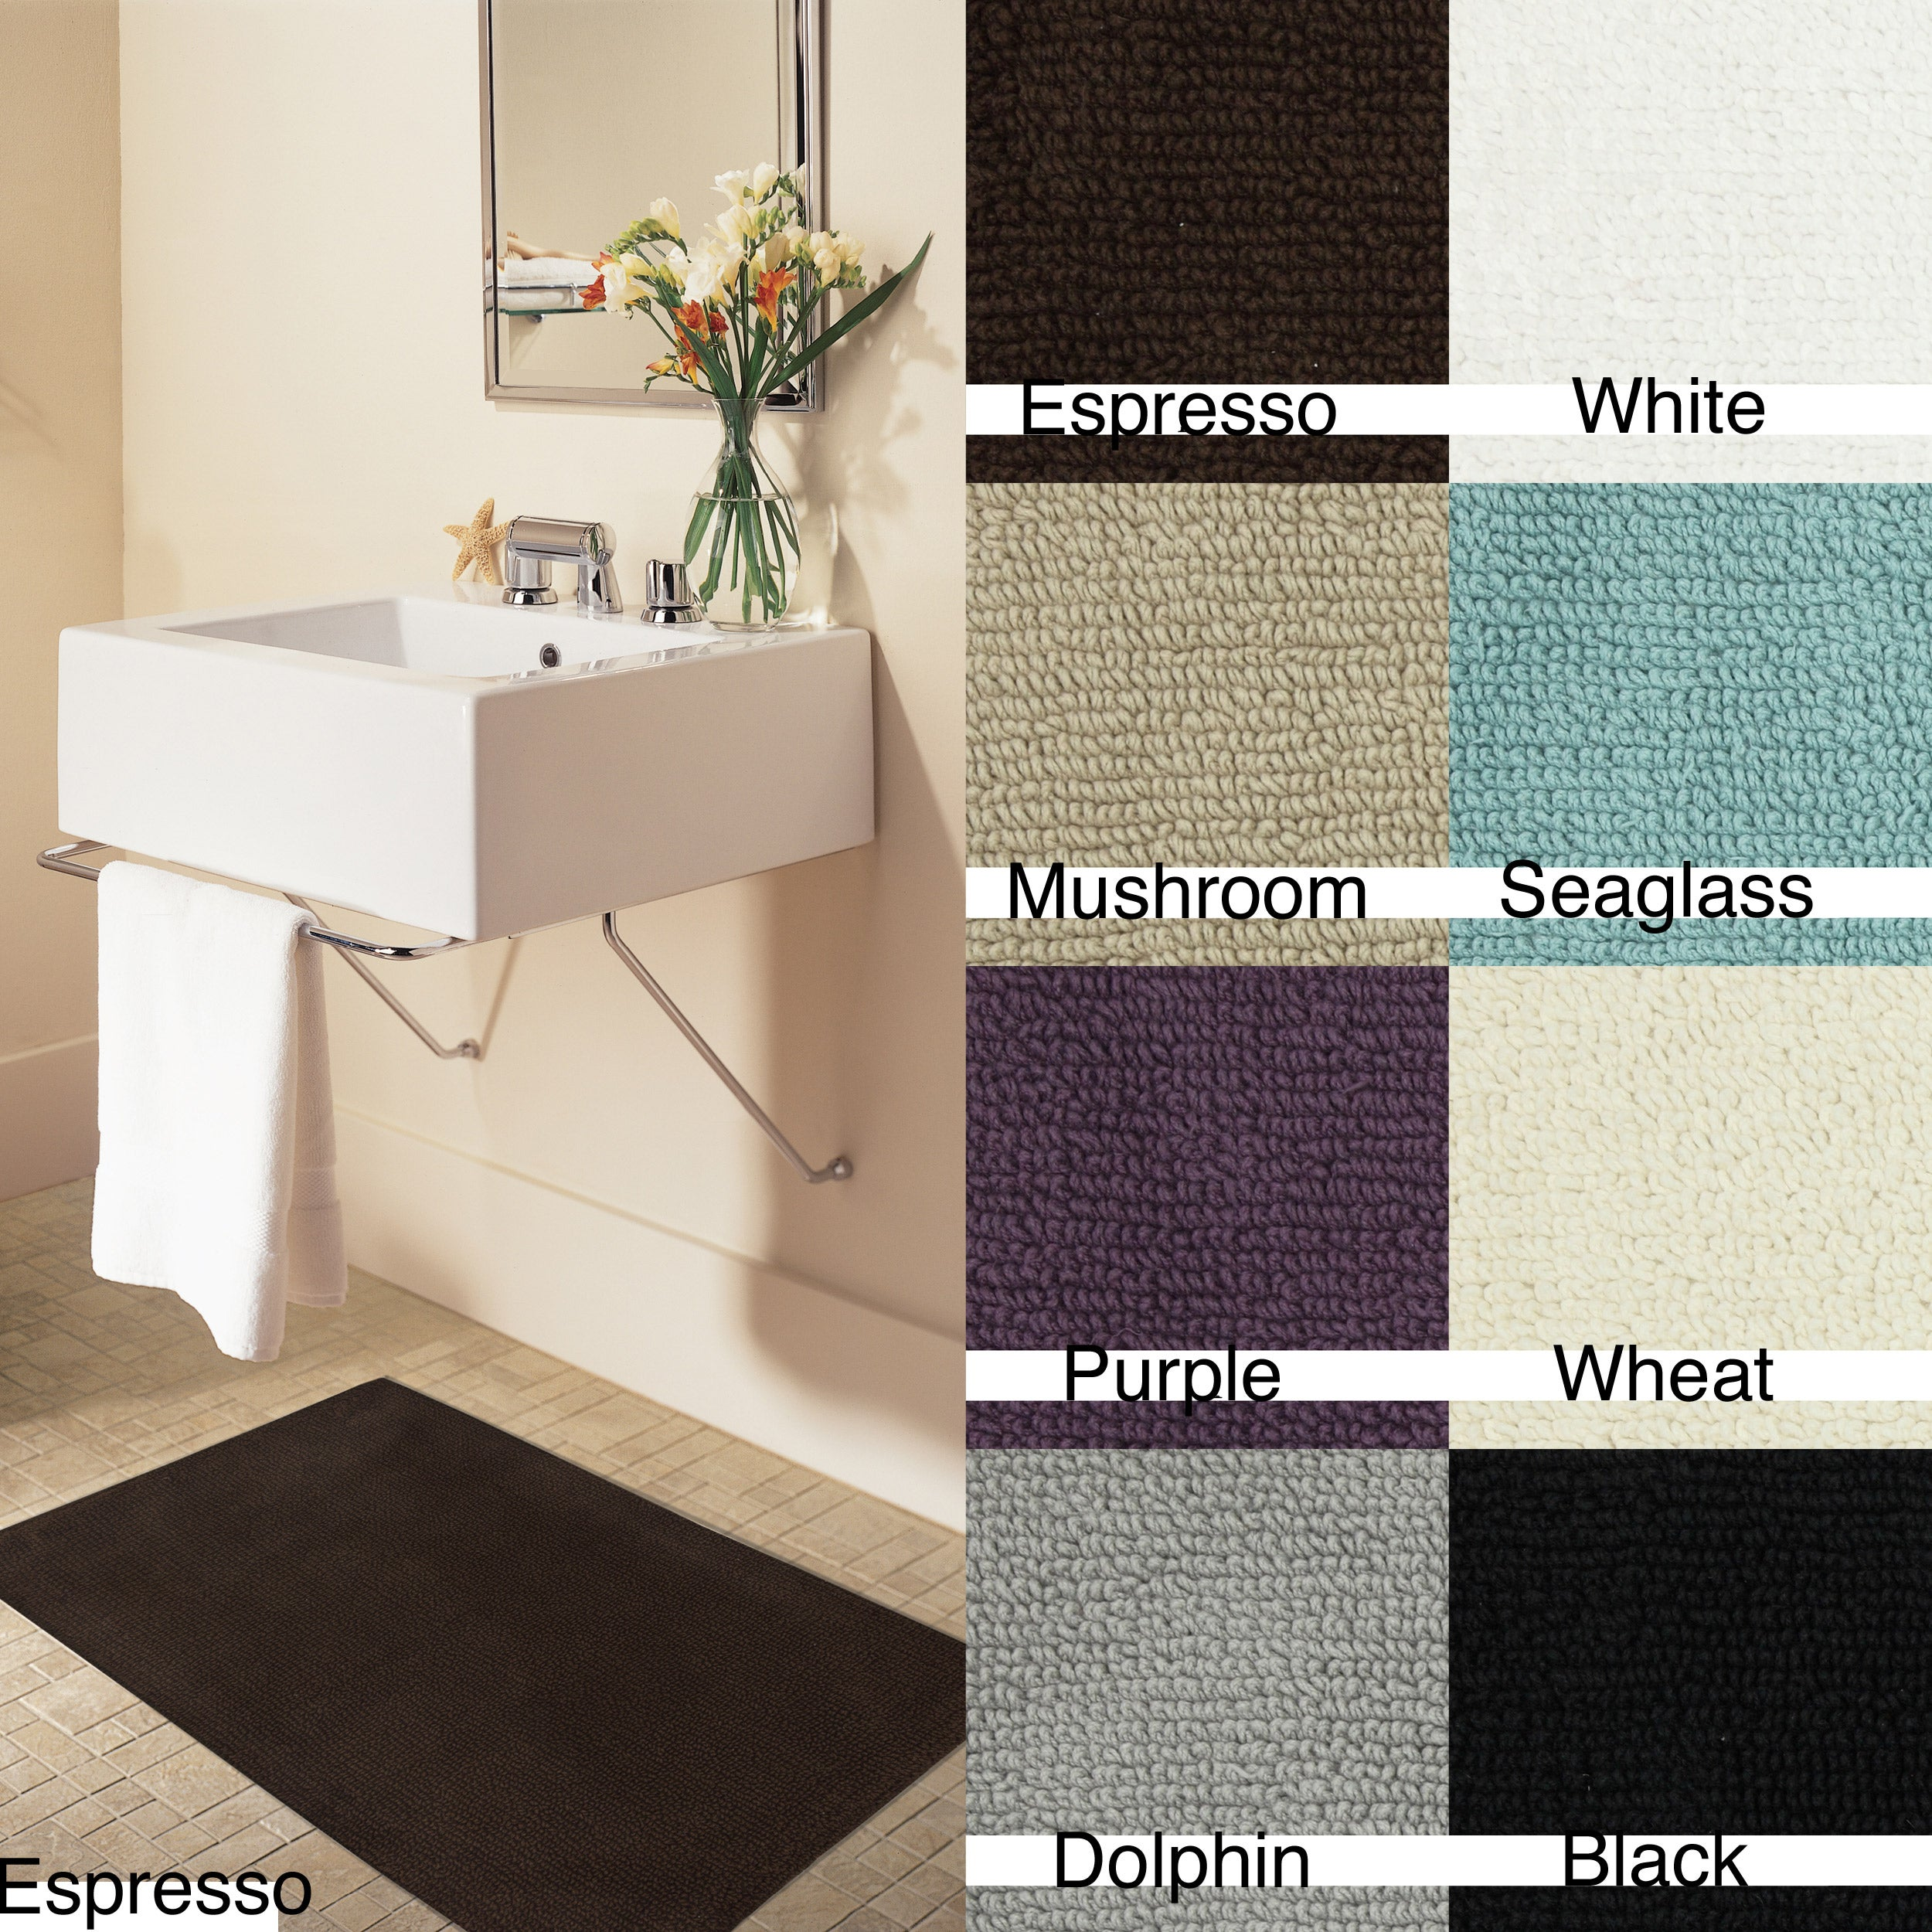 Cotton Casual 17 x 24 Bath Rug (Set of 2)